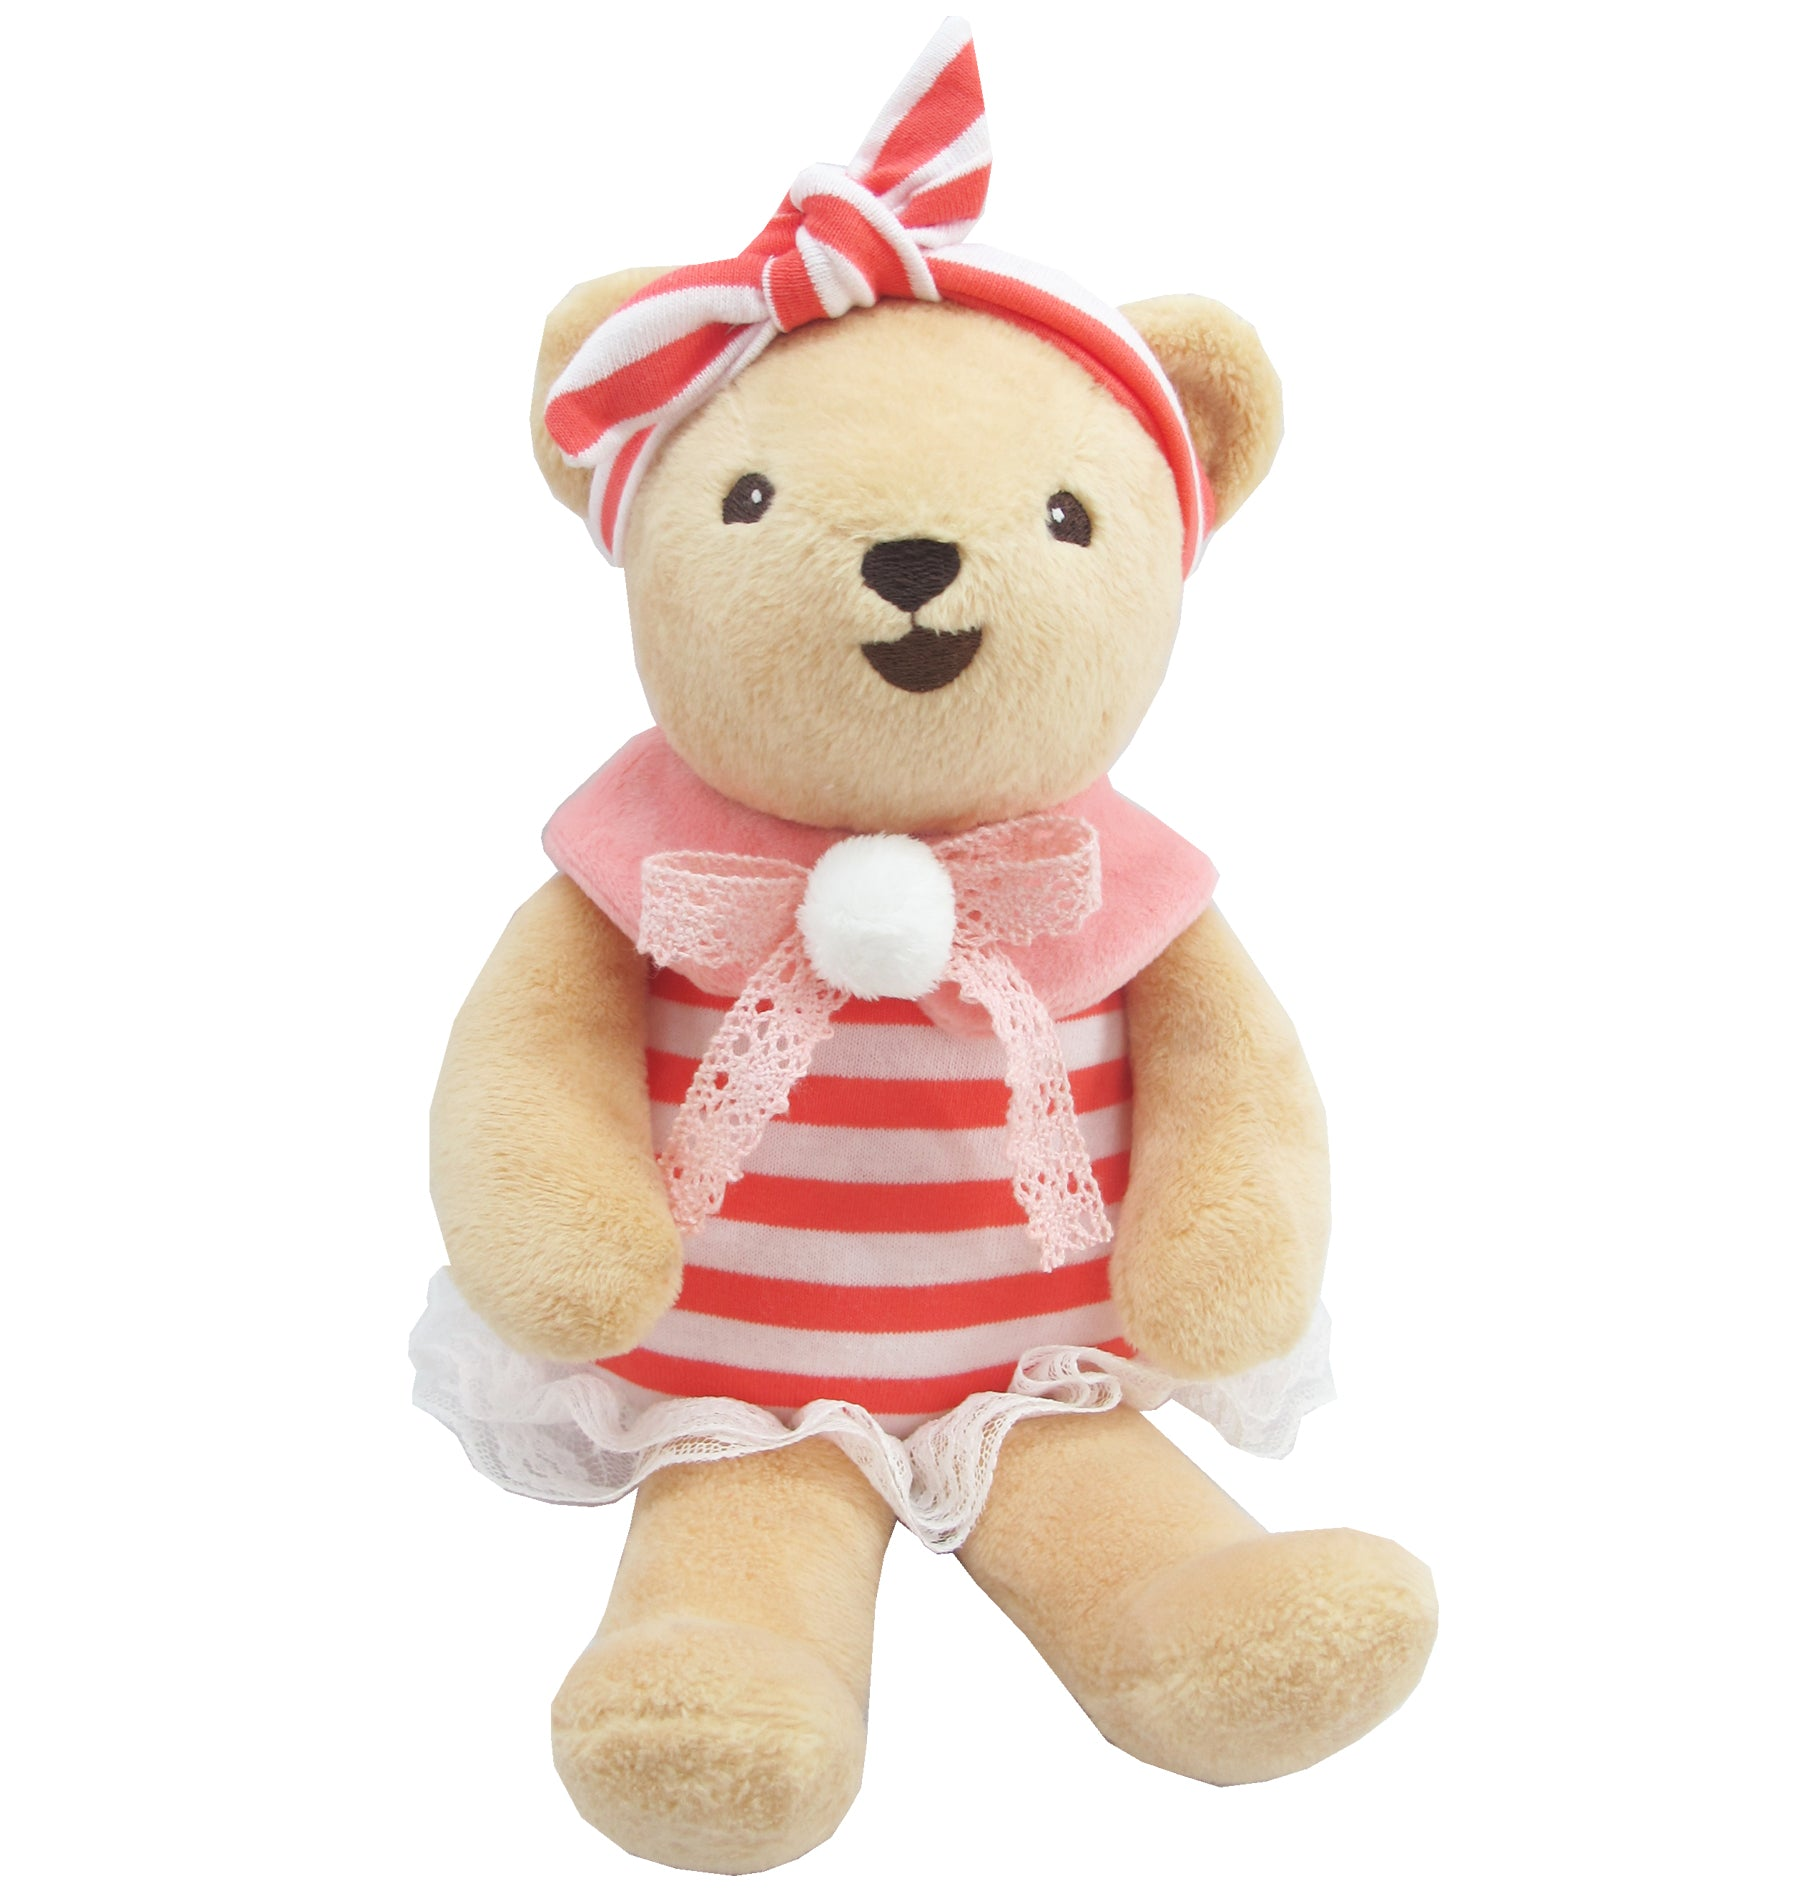 BEAR WITH OUTFITS GIRL (OLD ROSE) 10 INCHI M COLLECTION